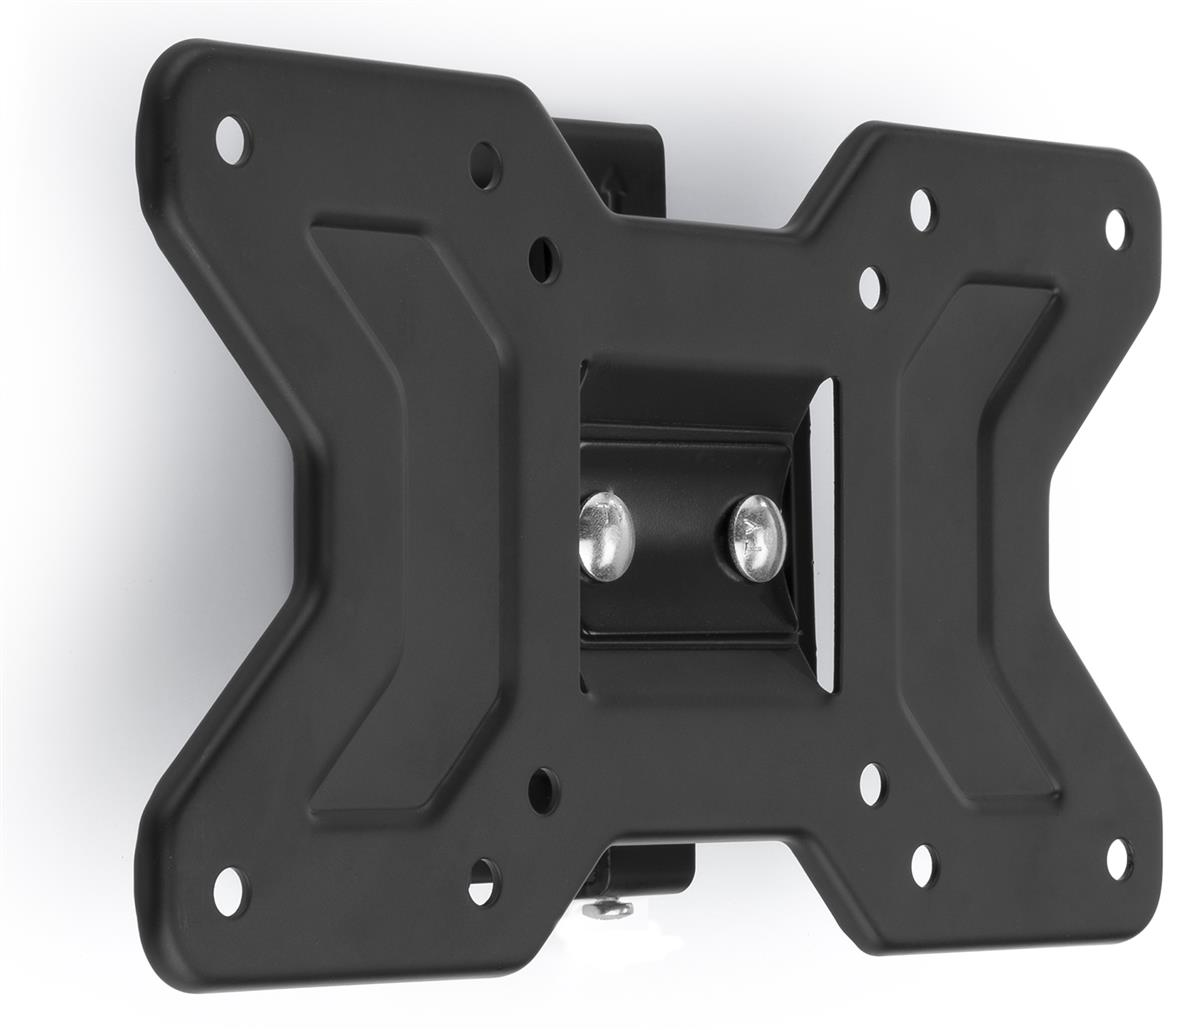 Tv Wall Mounting Plate Fits 10 32 Flat Screens